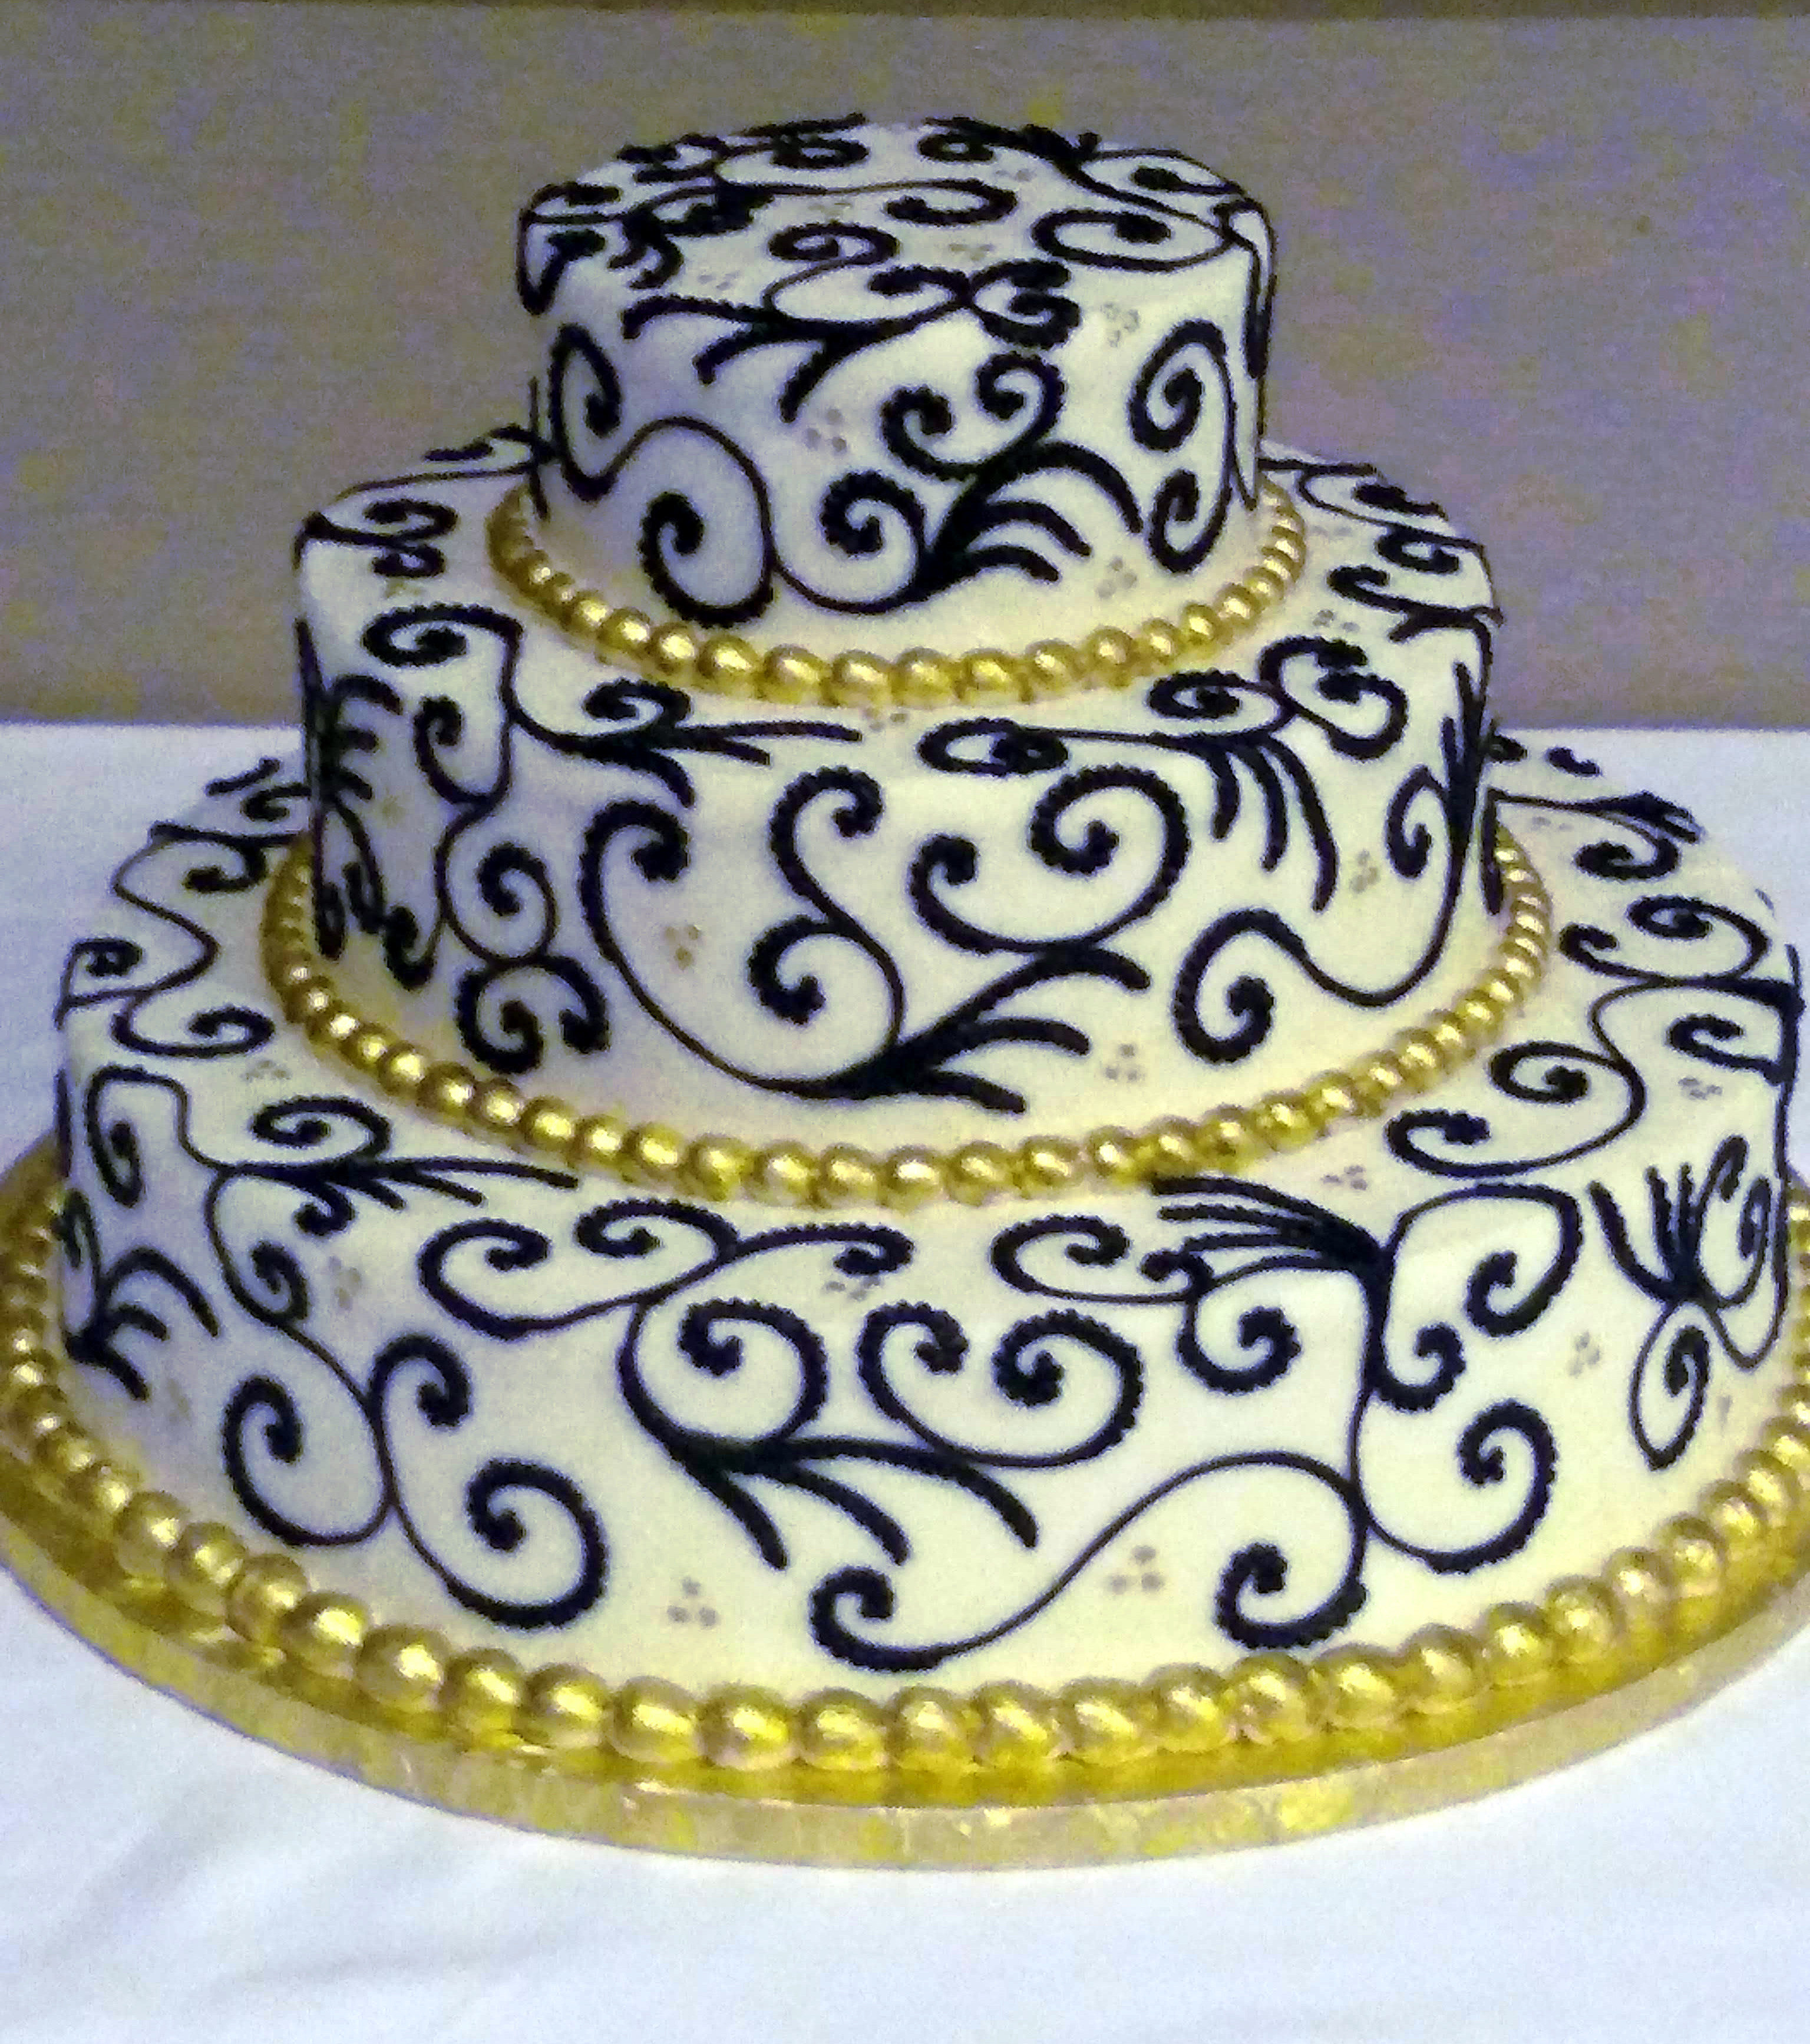 Black and Gold Cake